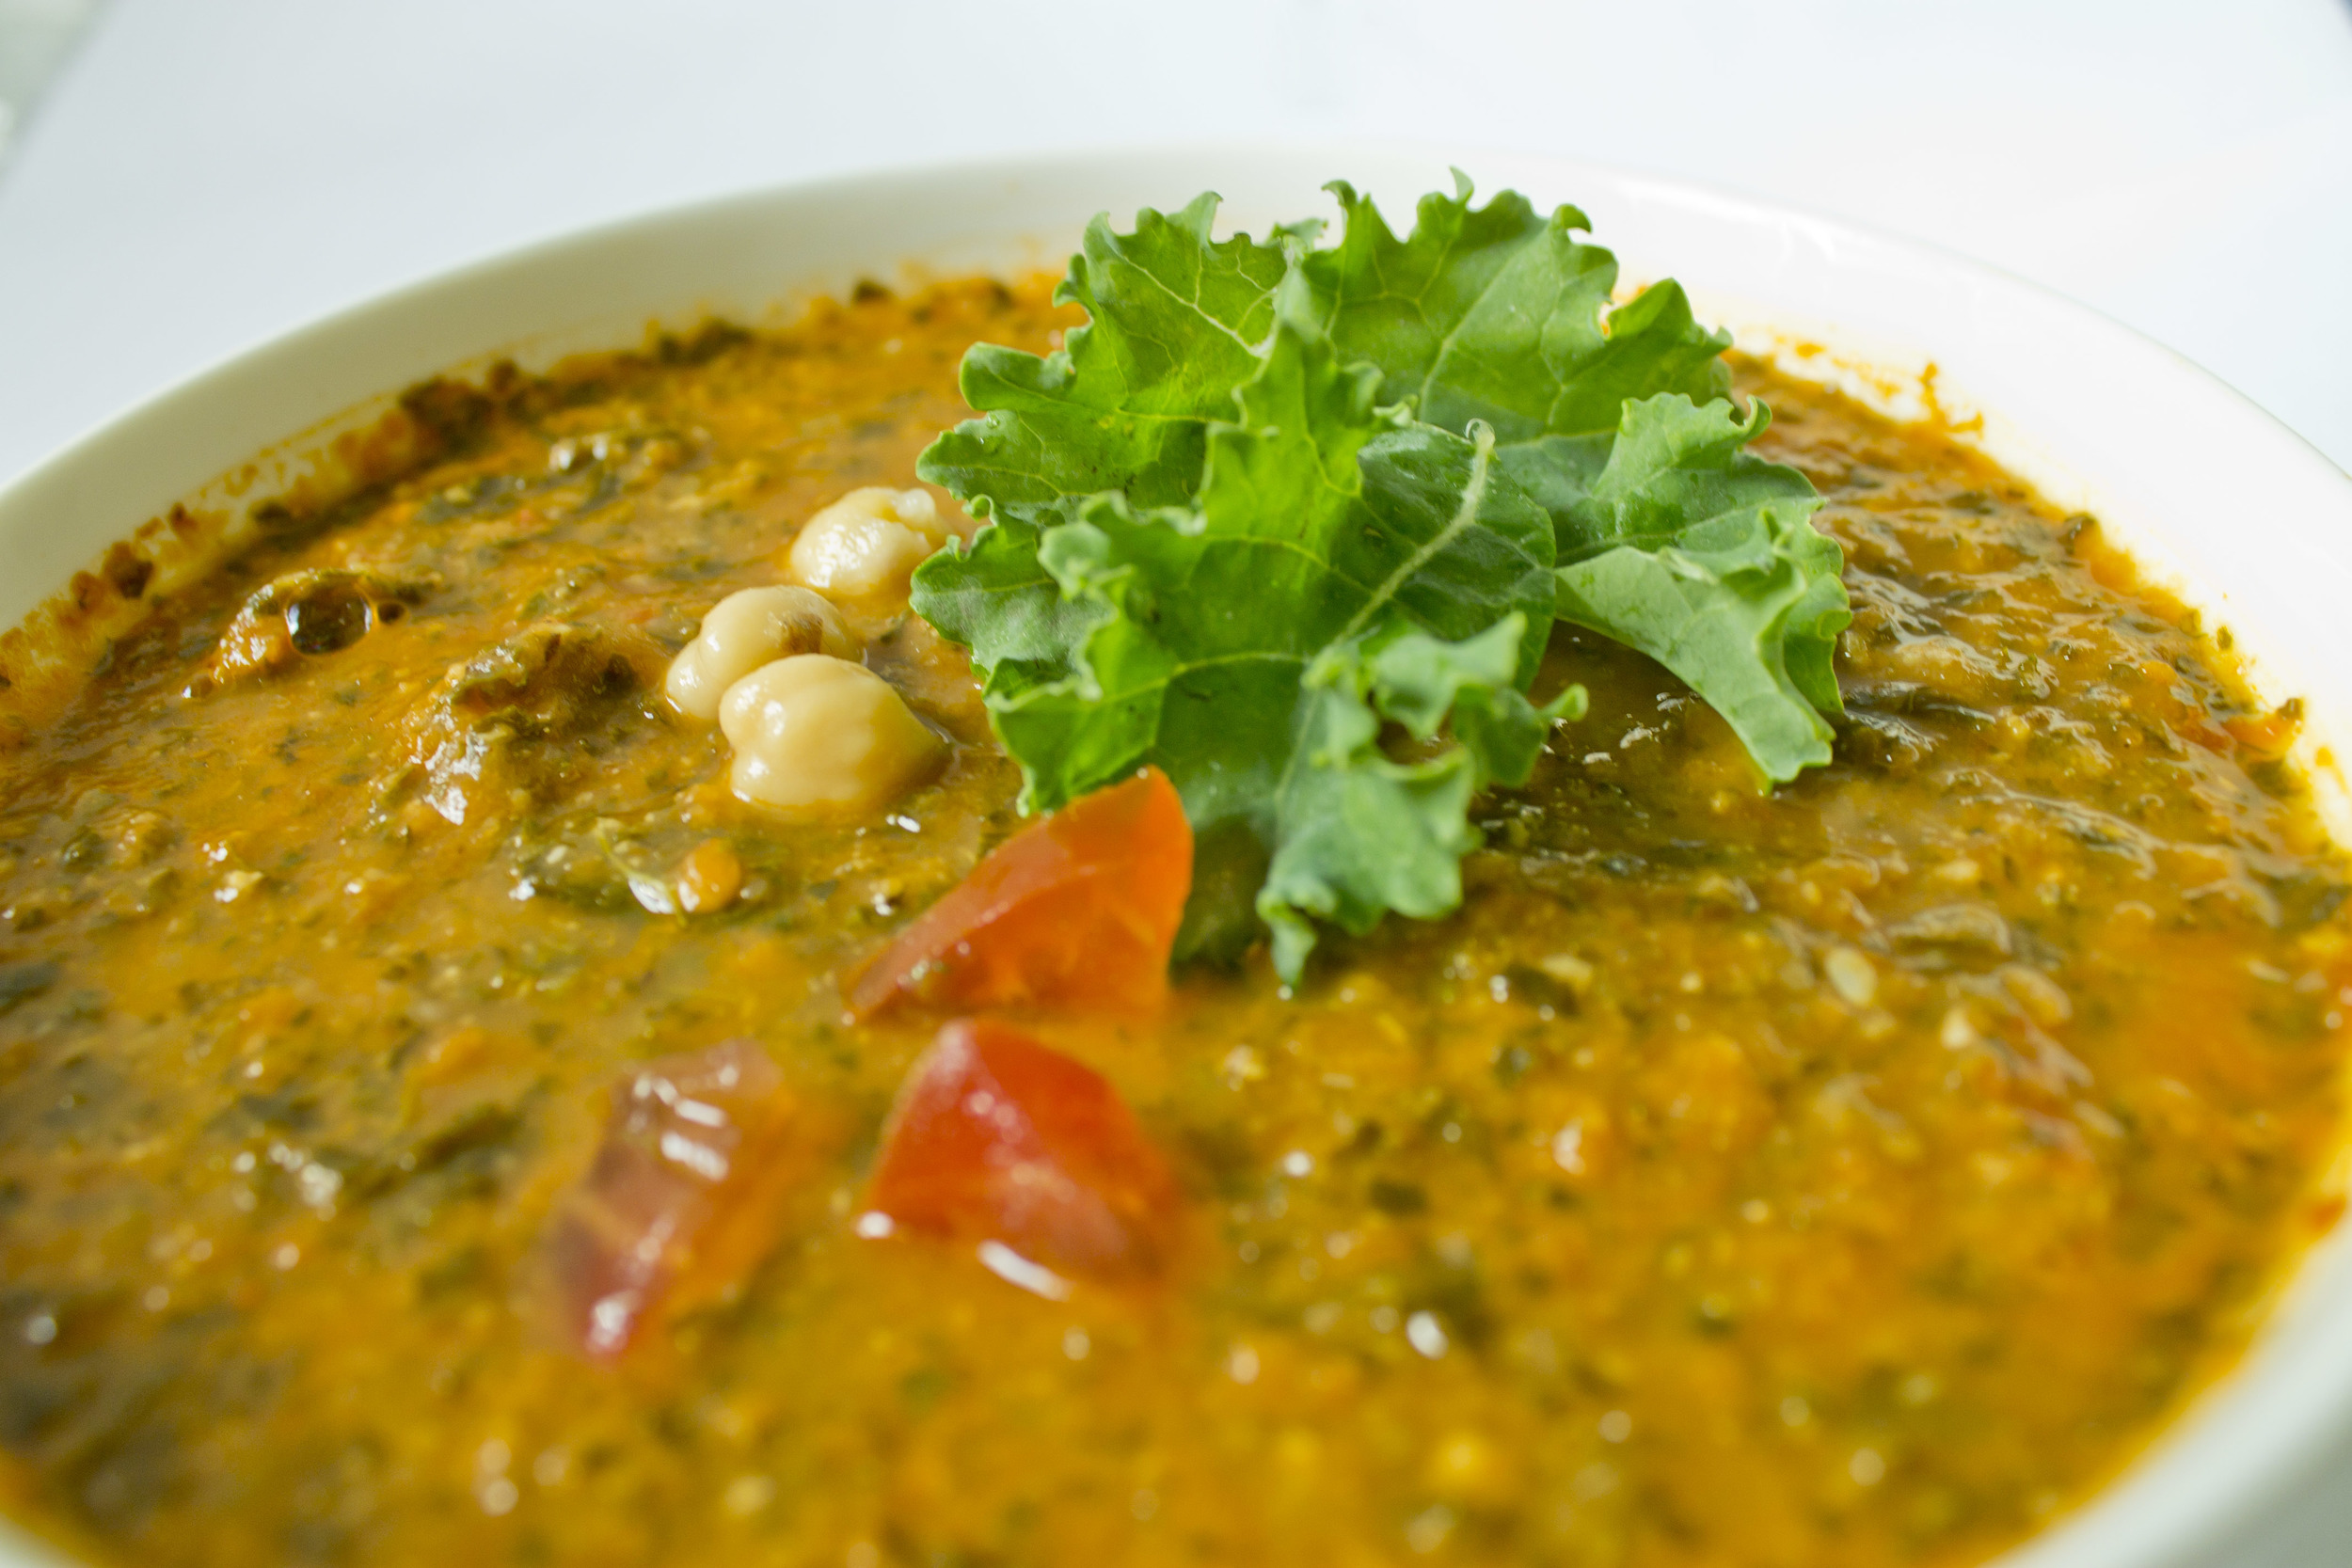 Kale Tomato Soup with Chickpeas and Cumin